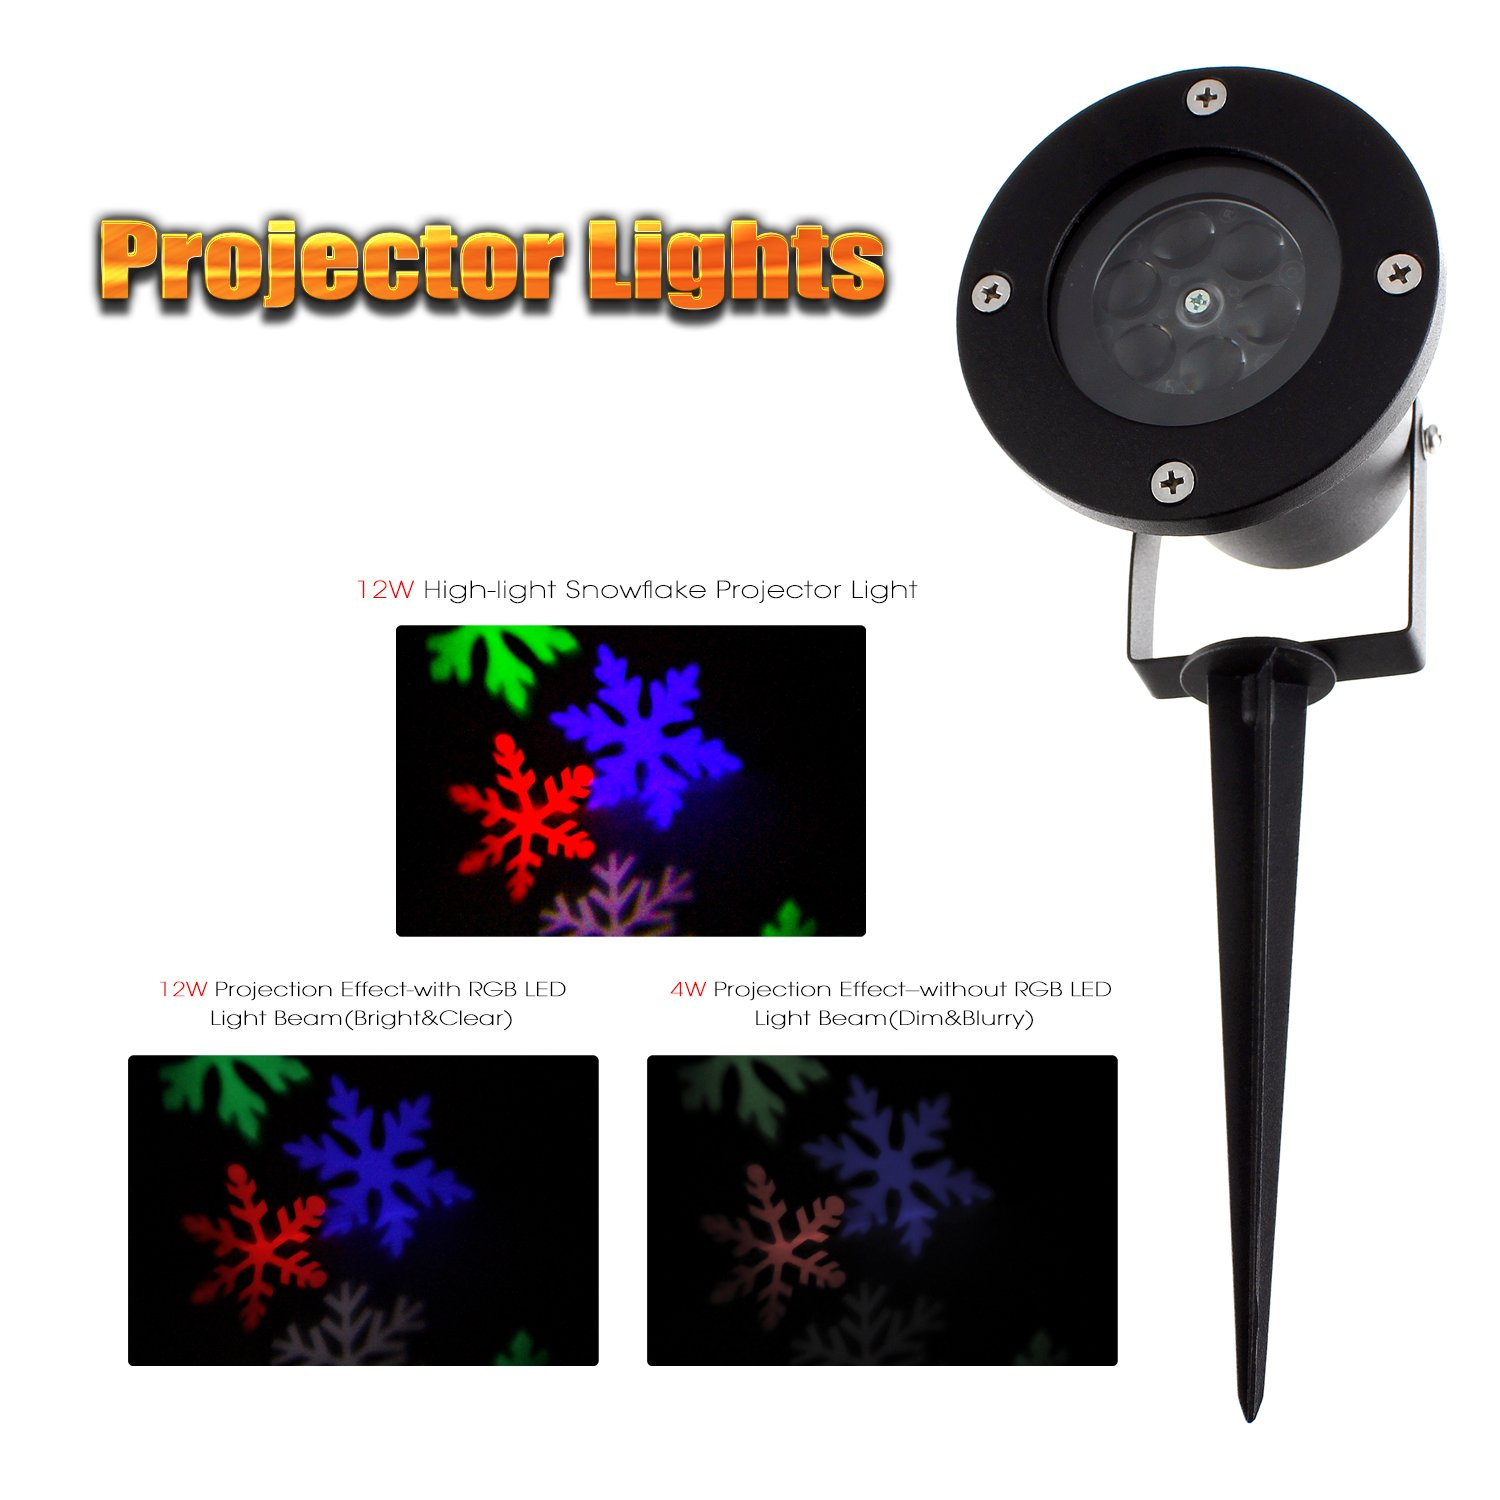 Quellance Christmas Projector Lights Snowflake, 12W Projector Light Outdoor, High-Light LED Light Lawn Garden Waterproof Landscape Spotlight with 4 Color Snowflake for Halloween, Christmas, Parties